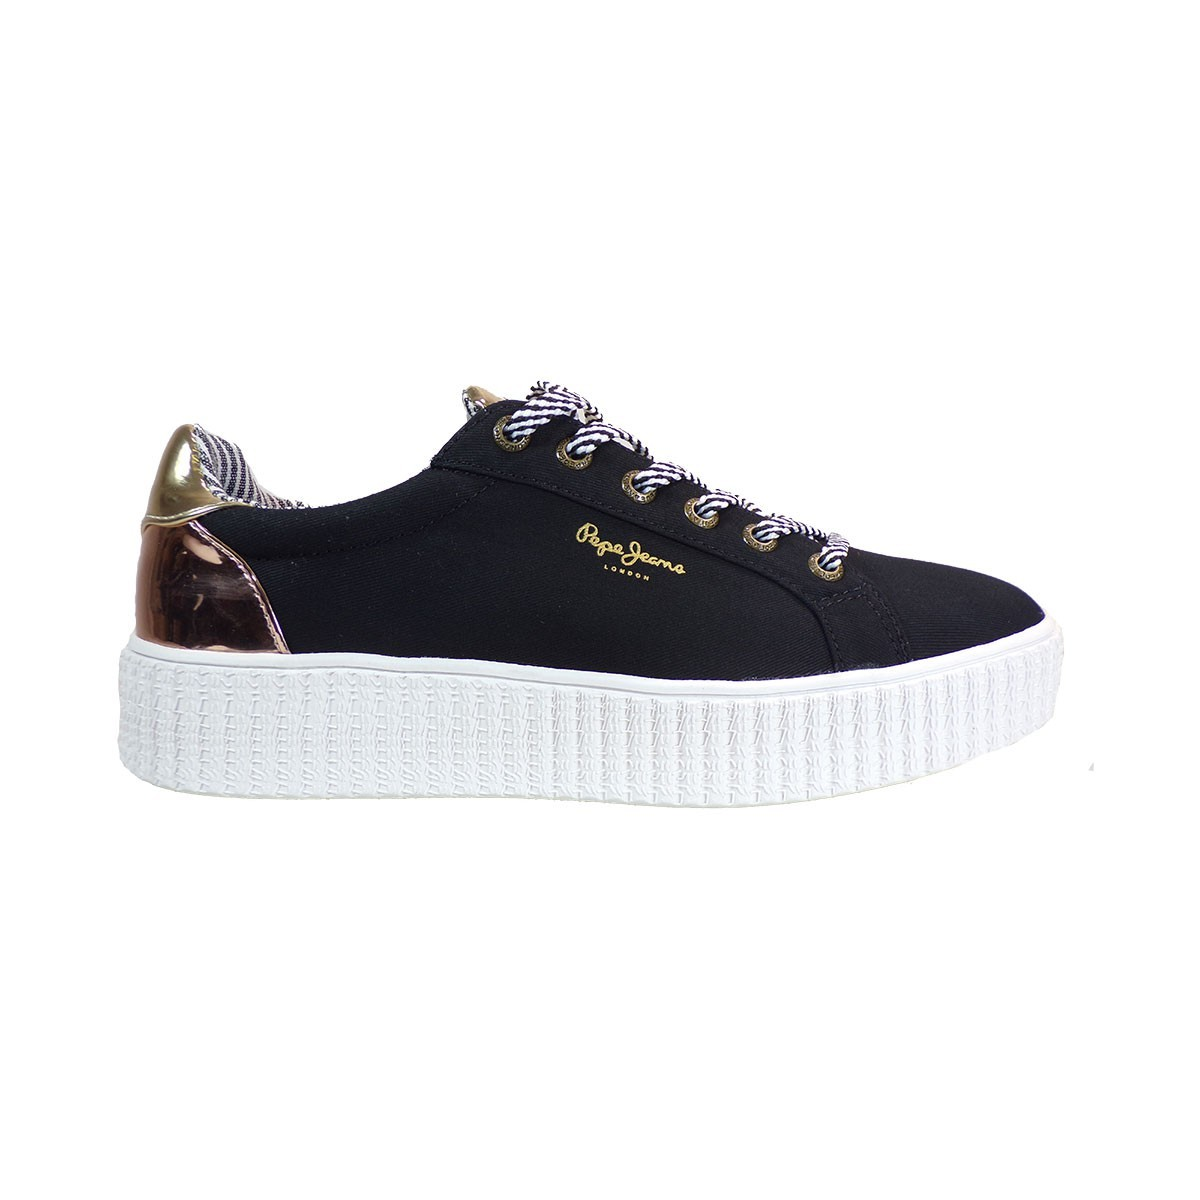 0fb4ad33d7 Pepe jeans FRIDA Sneakers Γυναικεία Παπούτσια PLS30686-999 Μαύρο –  IShoeStore